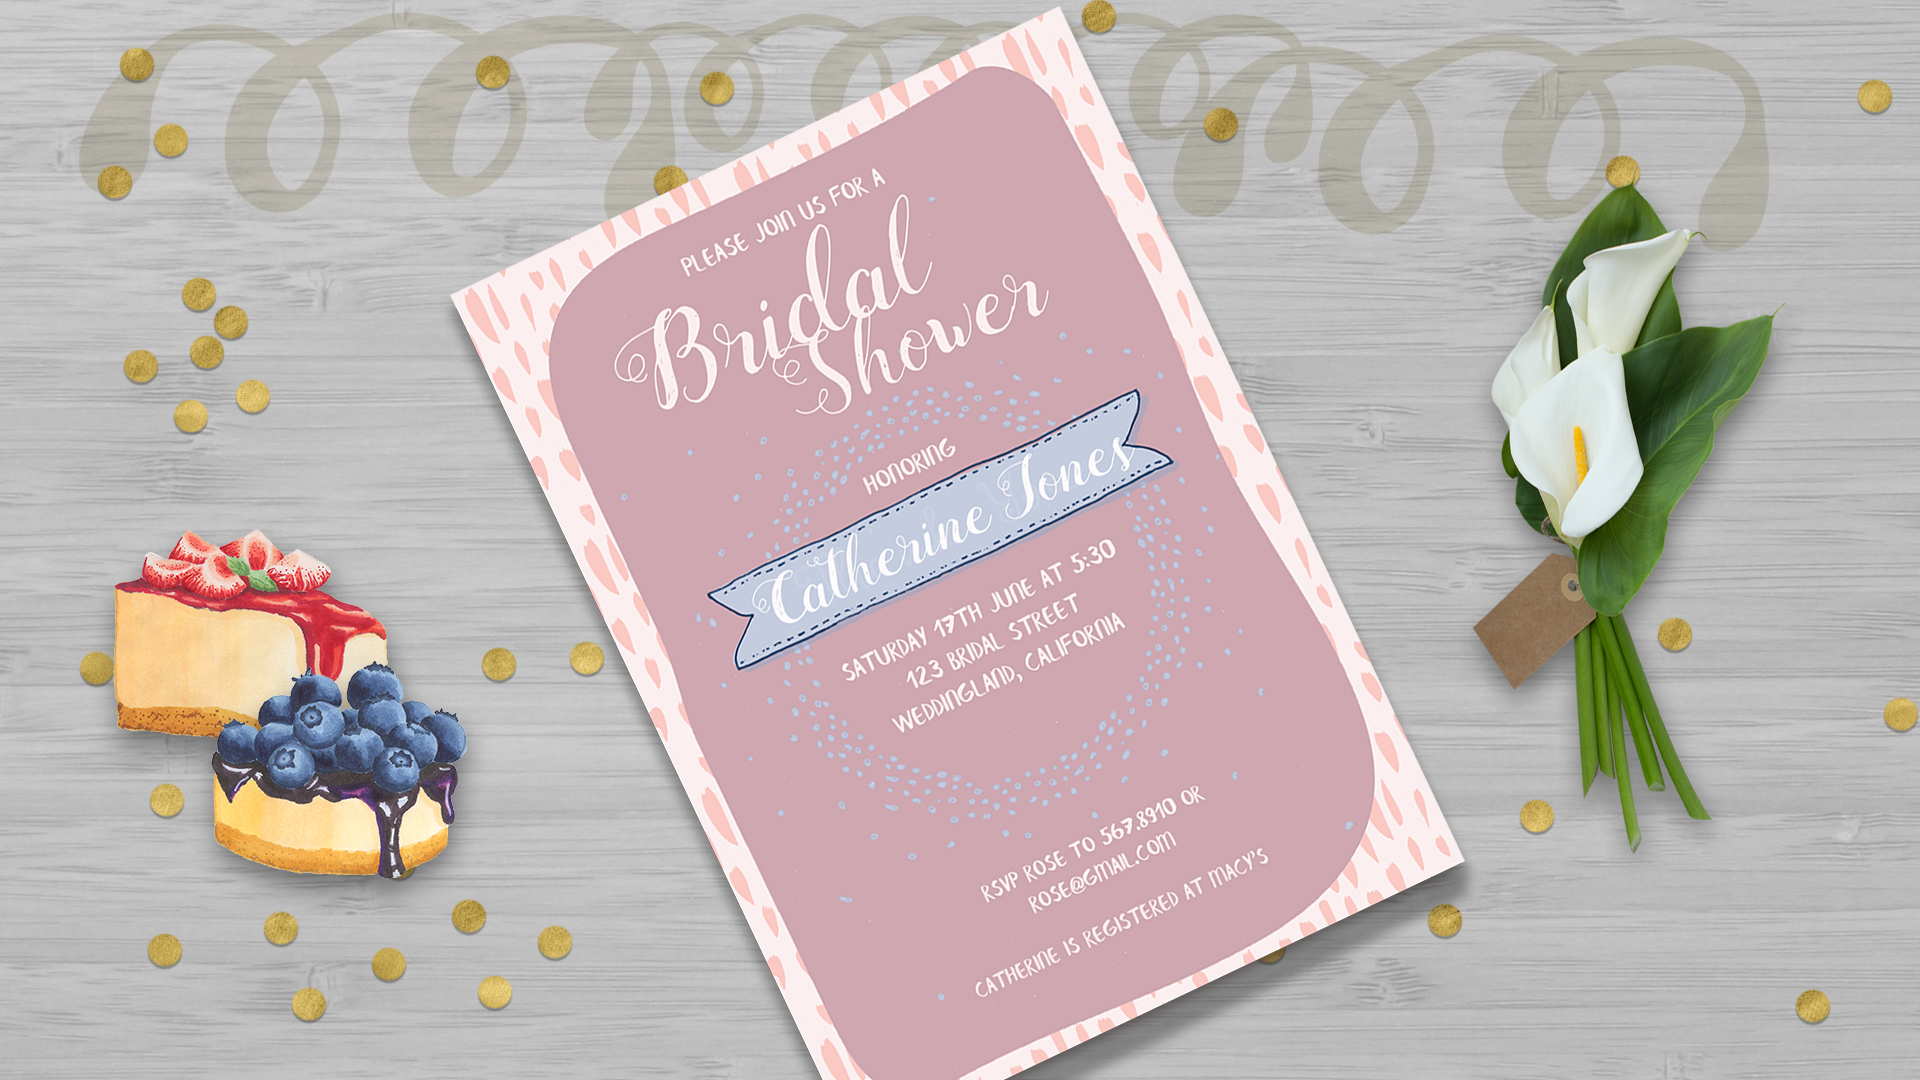 Bridal Shower Point Invitation Card Template example image 2